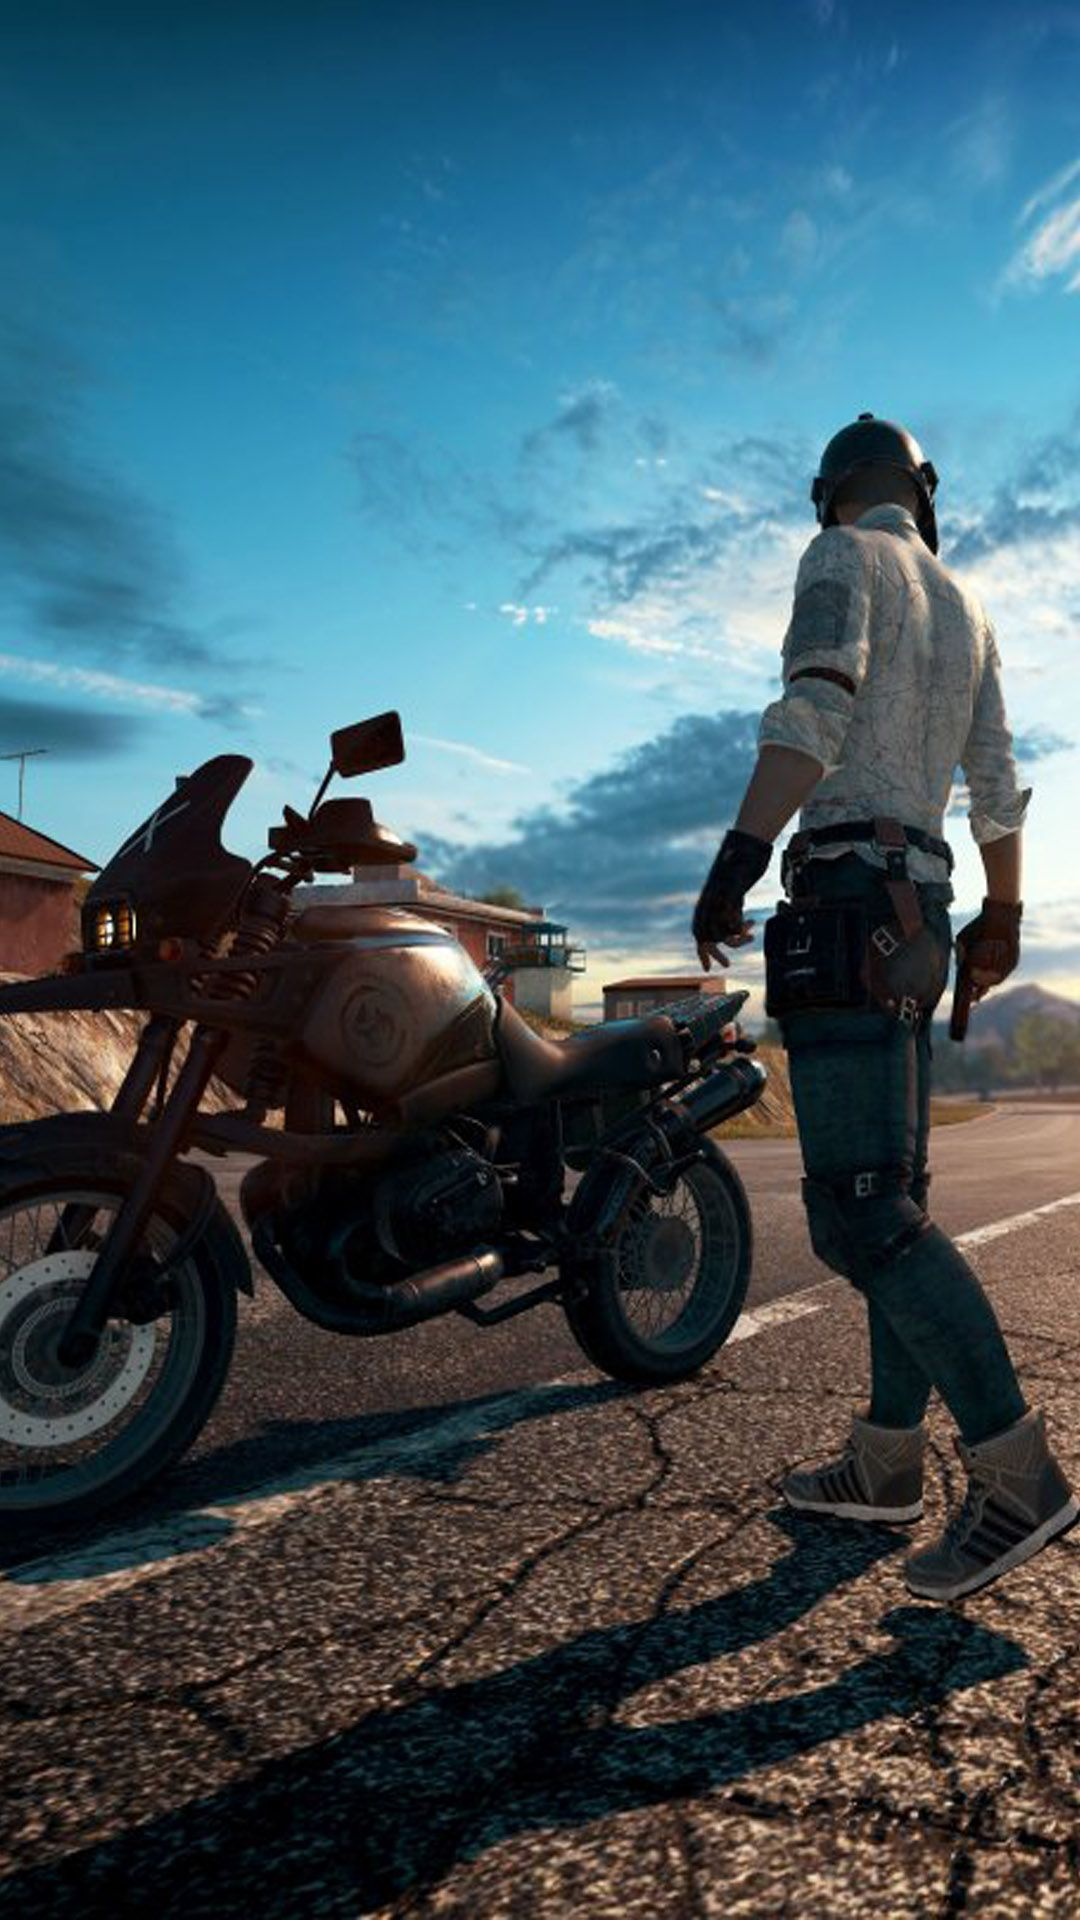 Playerunknownu0027s Battlegrounds (PUBG) New 2018 HD Mobile Wallpaper Gaming  Wallpapers, Epic Games,